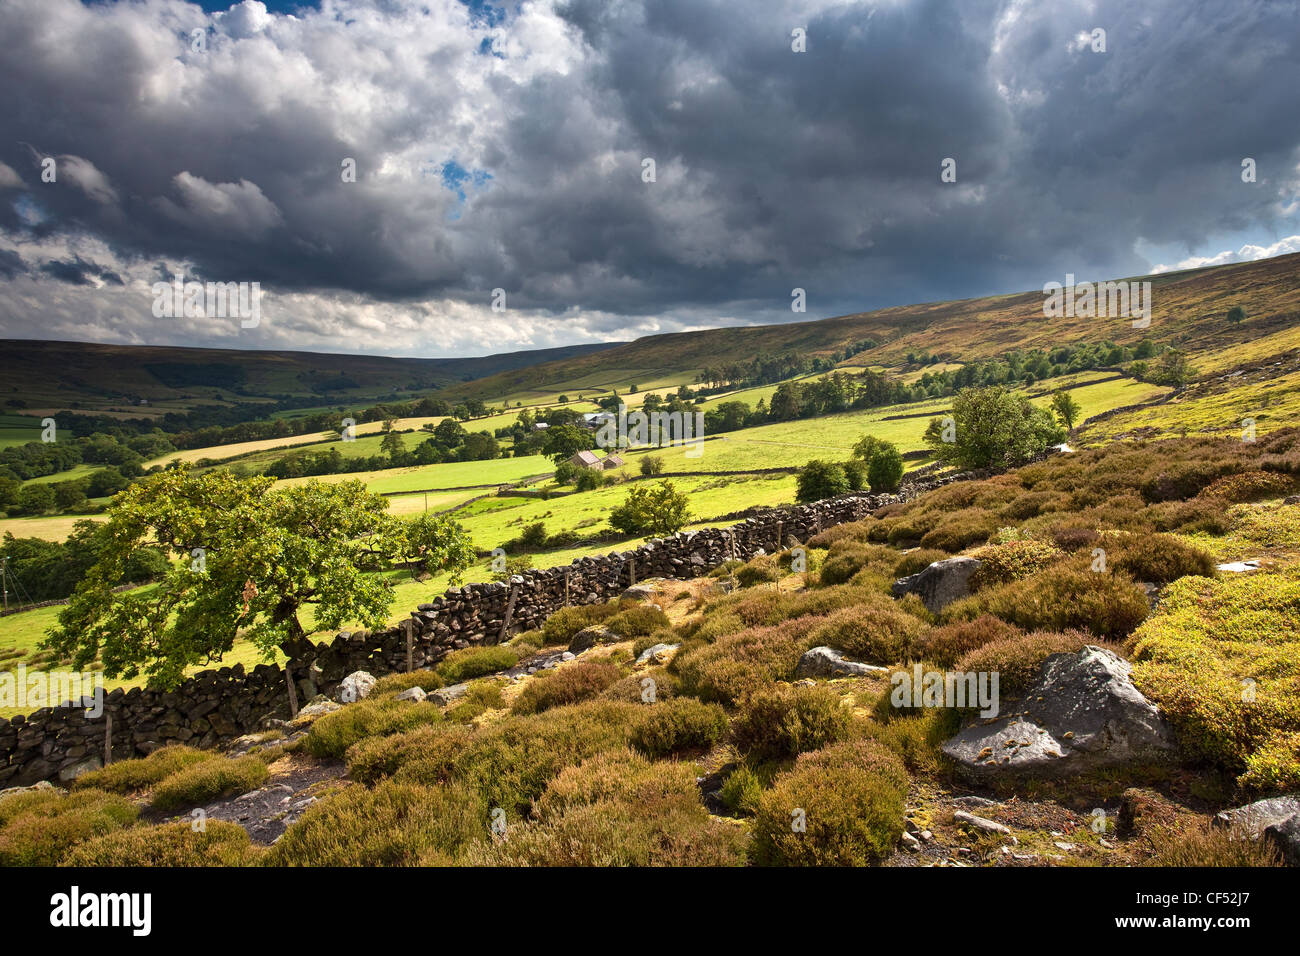 Dark clouds over Westerdale in the North York Moors National Park. - Stock Image